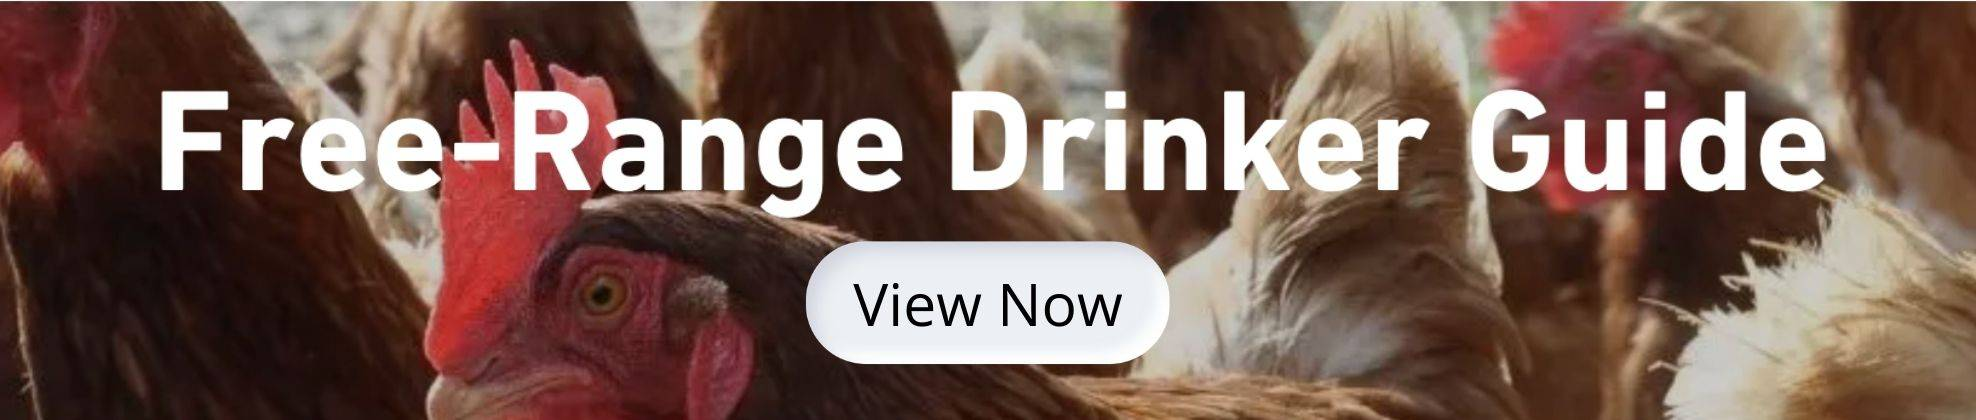 View our free-range drinker guide